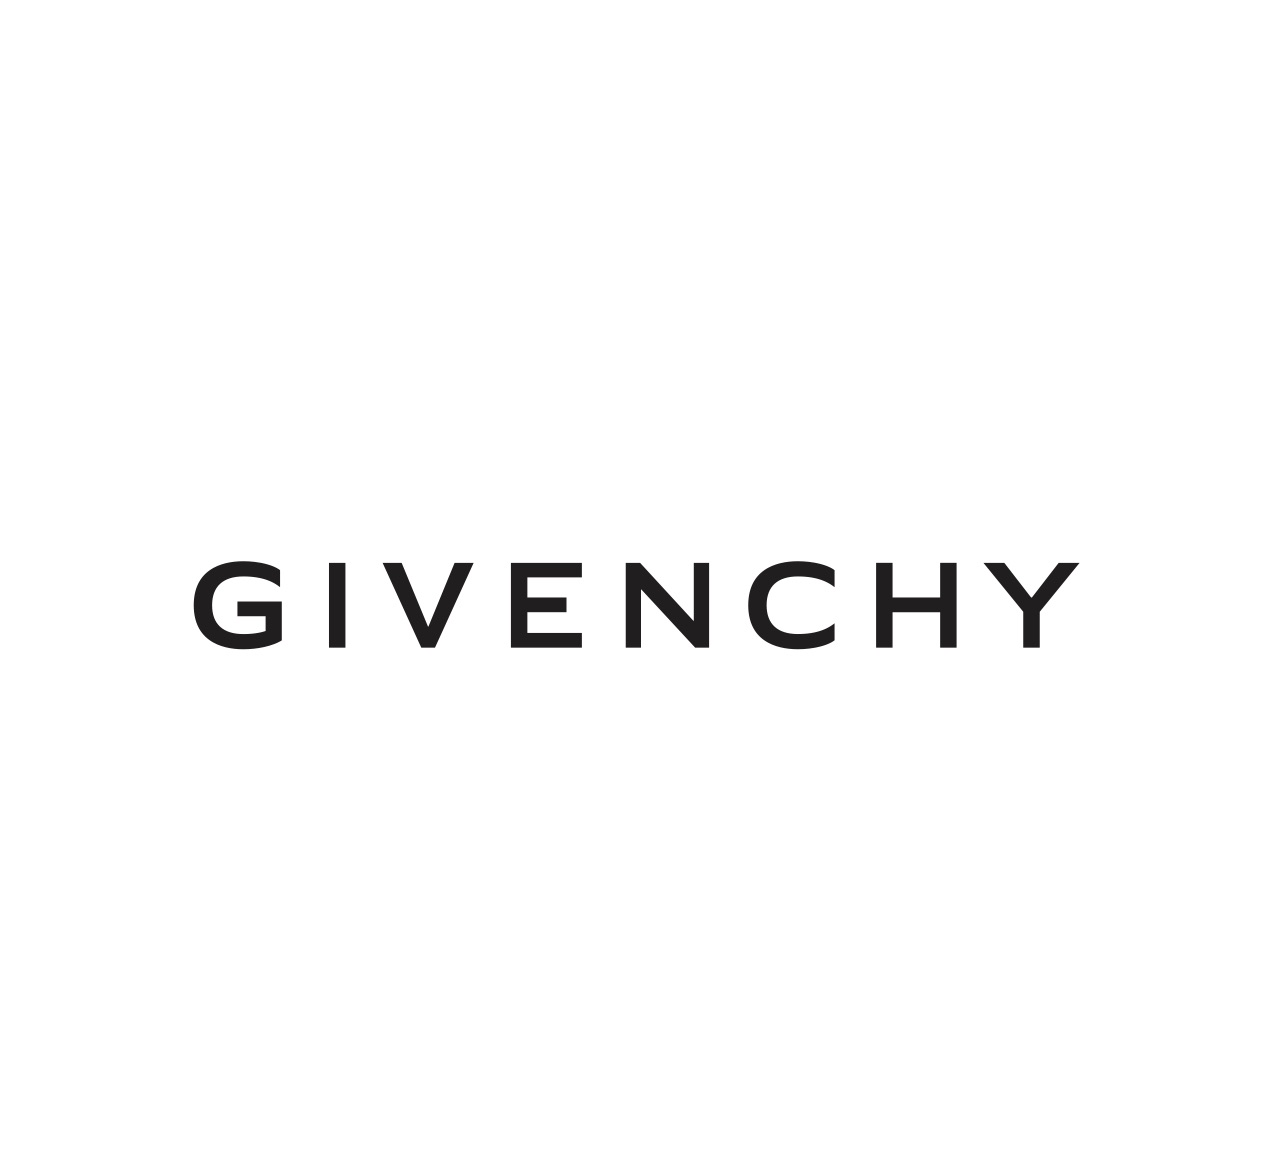 GIVENCHY_LOGO_BLACK (1).jpg